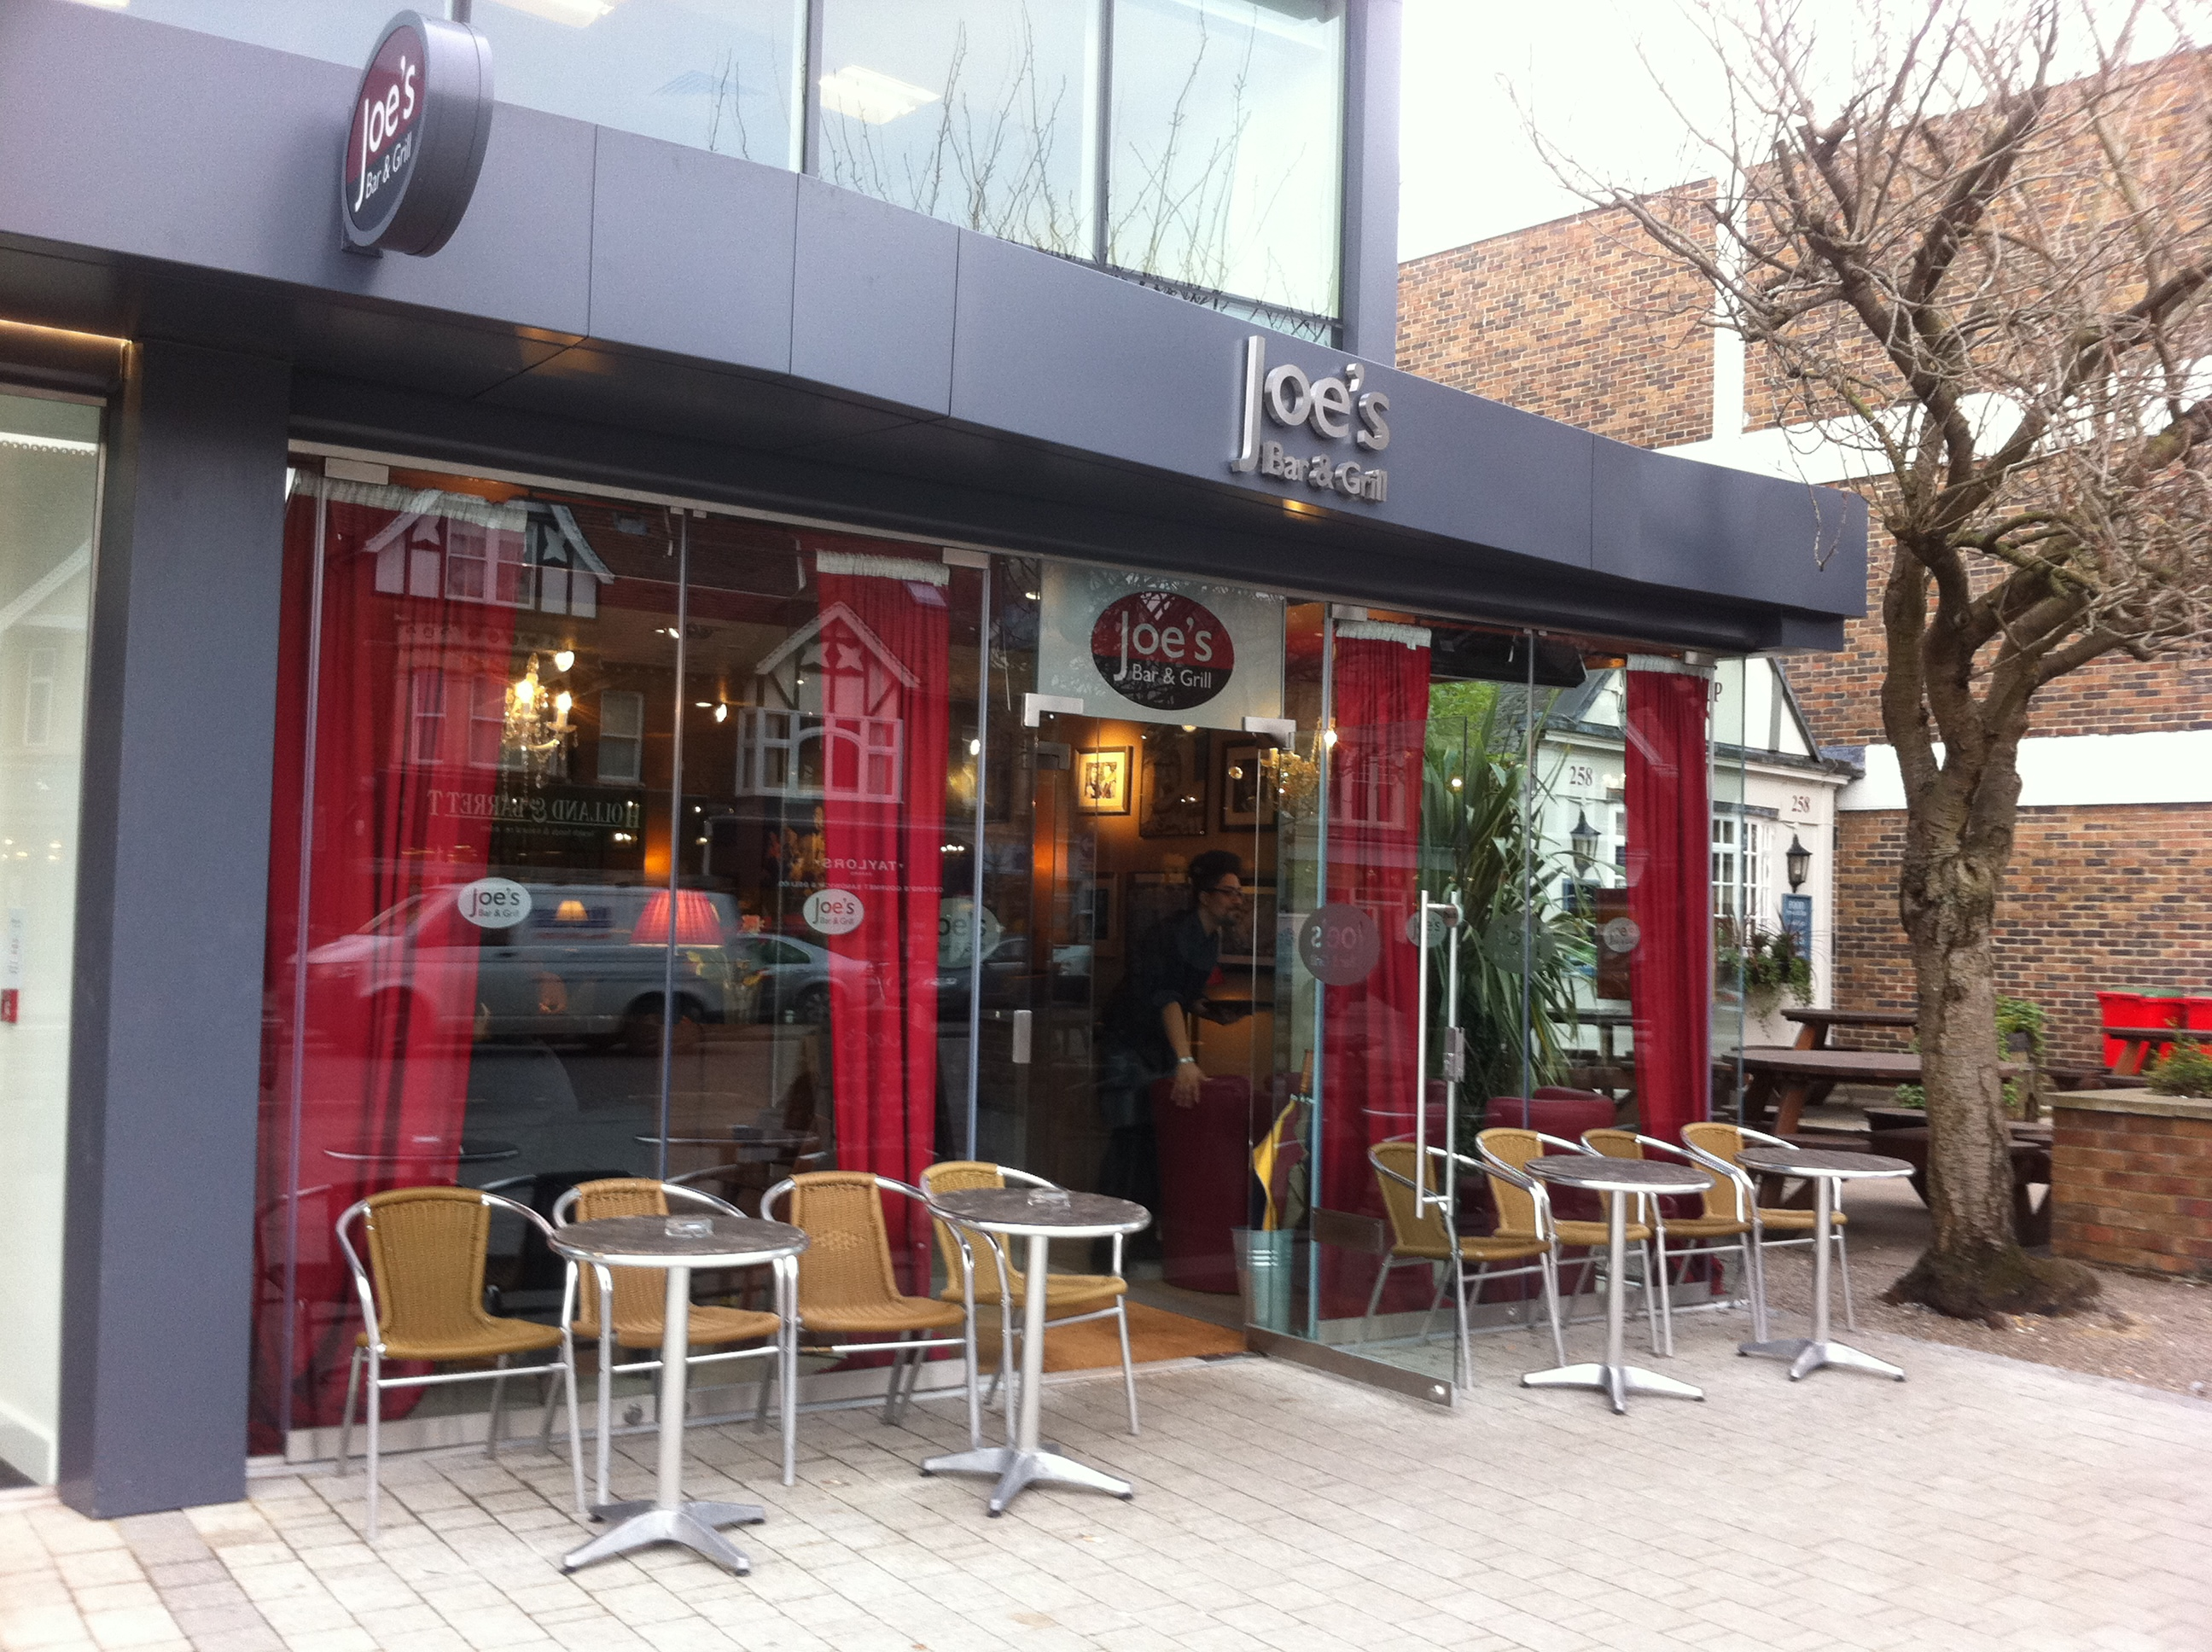 Joe 39 s bar and grill oxford - Restaurant bar and grill ...